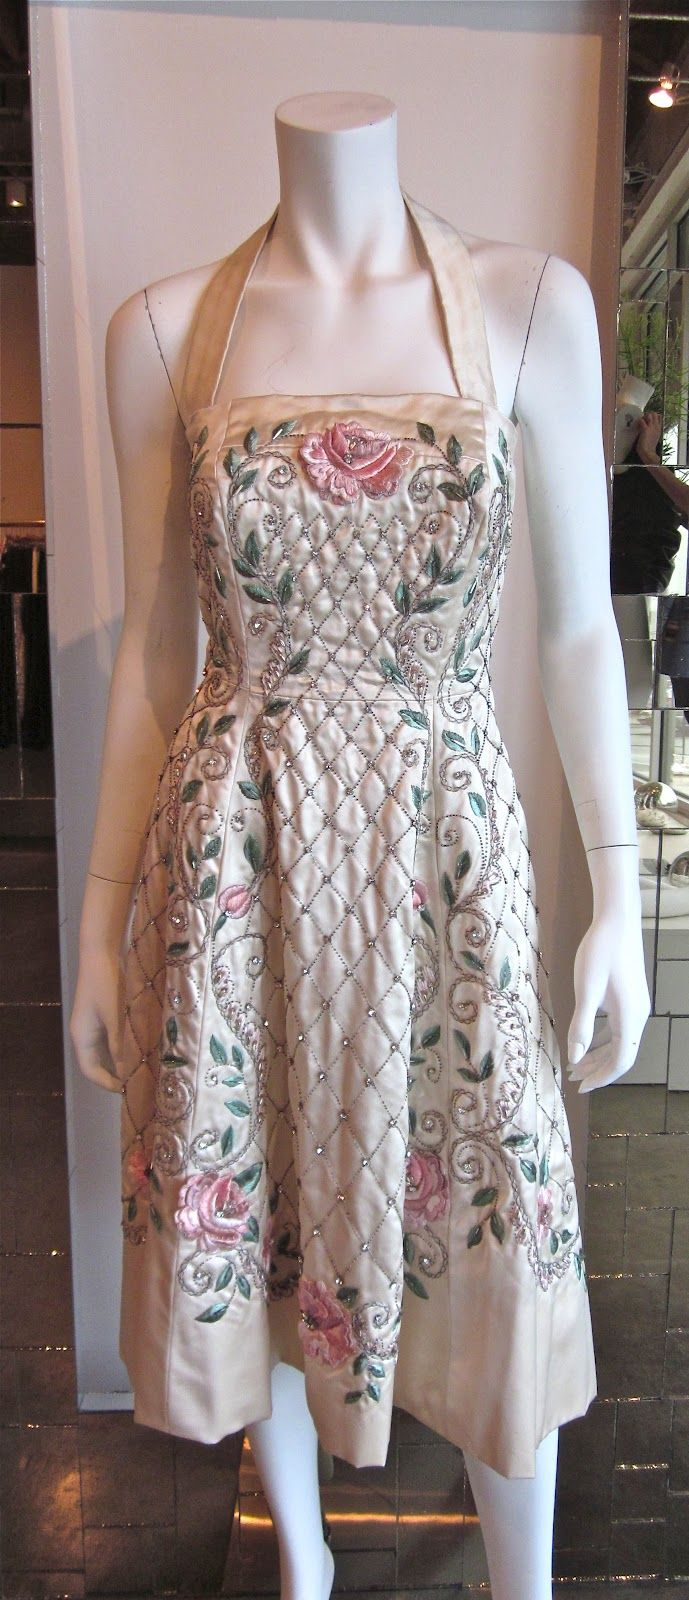 ... <b>vintage</b> condition. Completely hand-made, this <b>dress</b> is a supreme